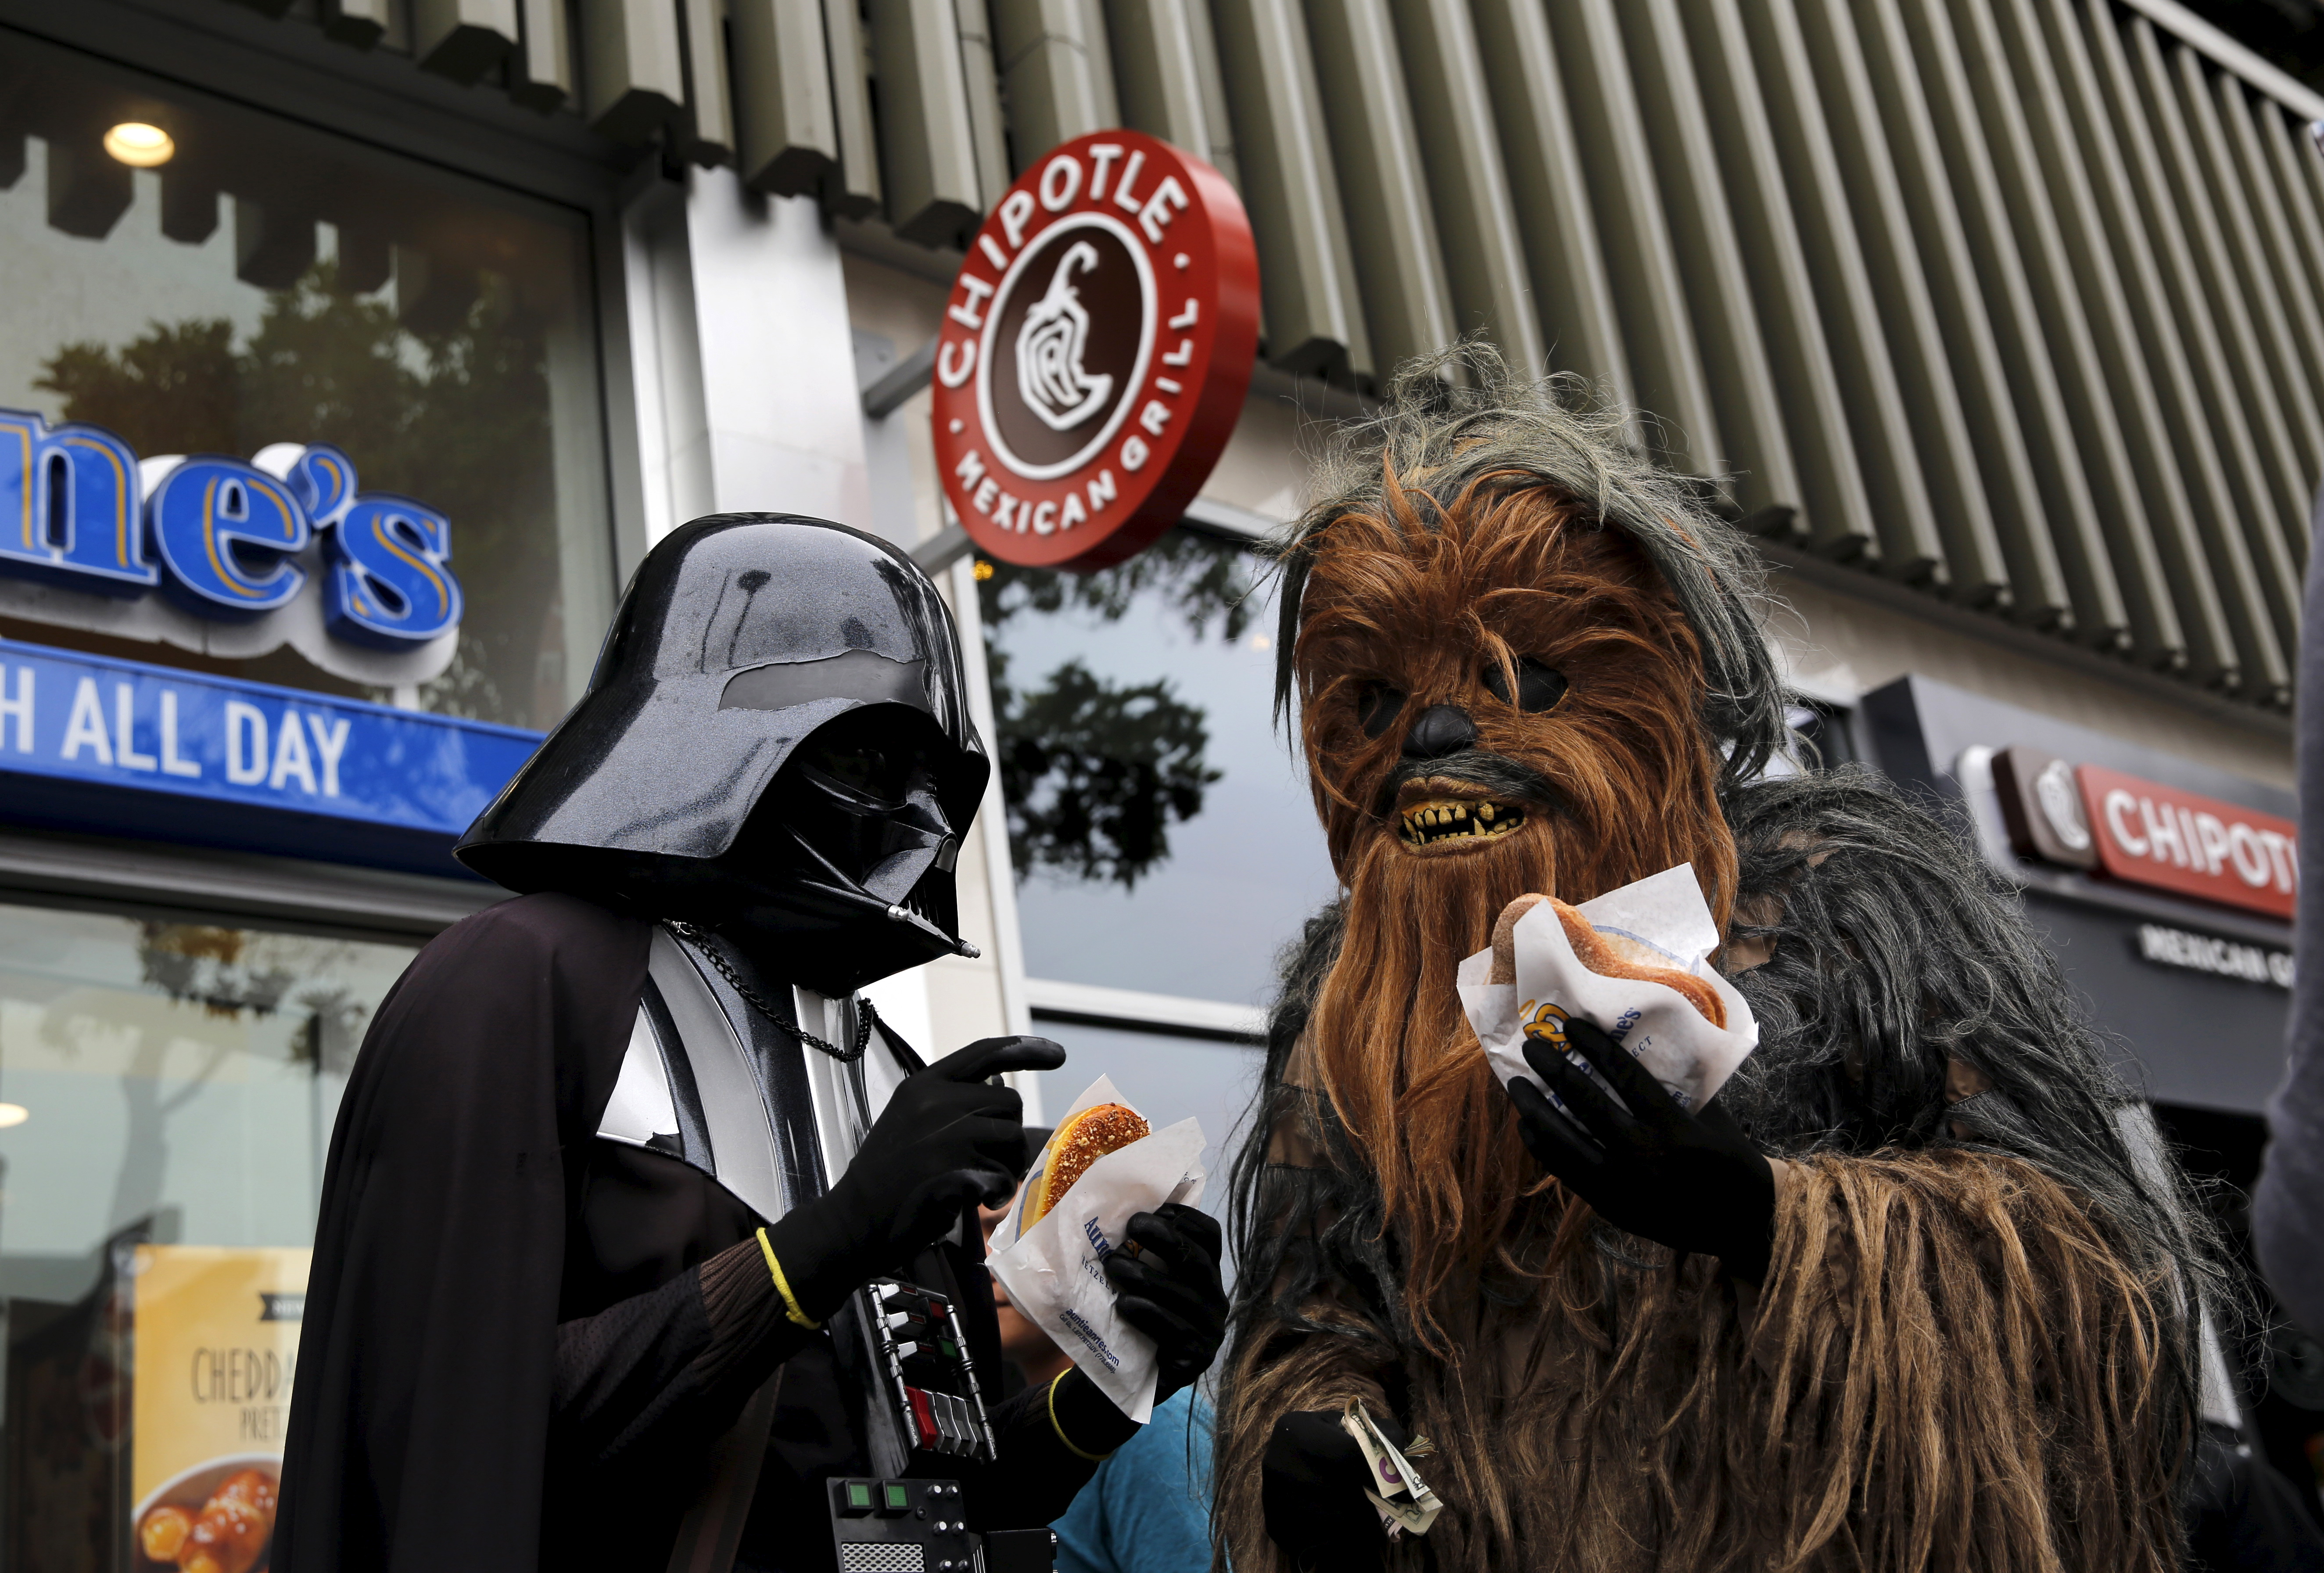 People wearing Star Wars-themed costumes eat pretzels in San Francisco, California